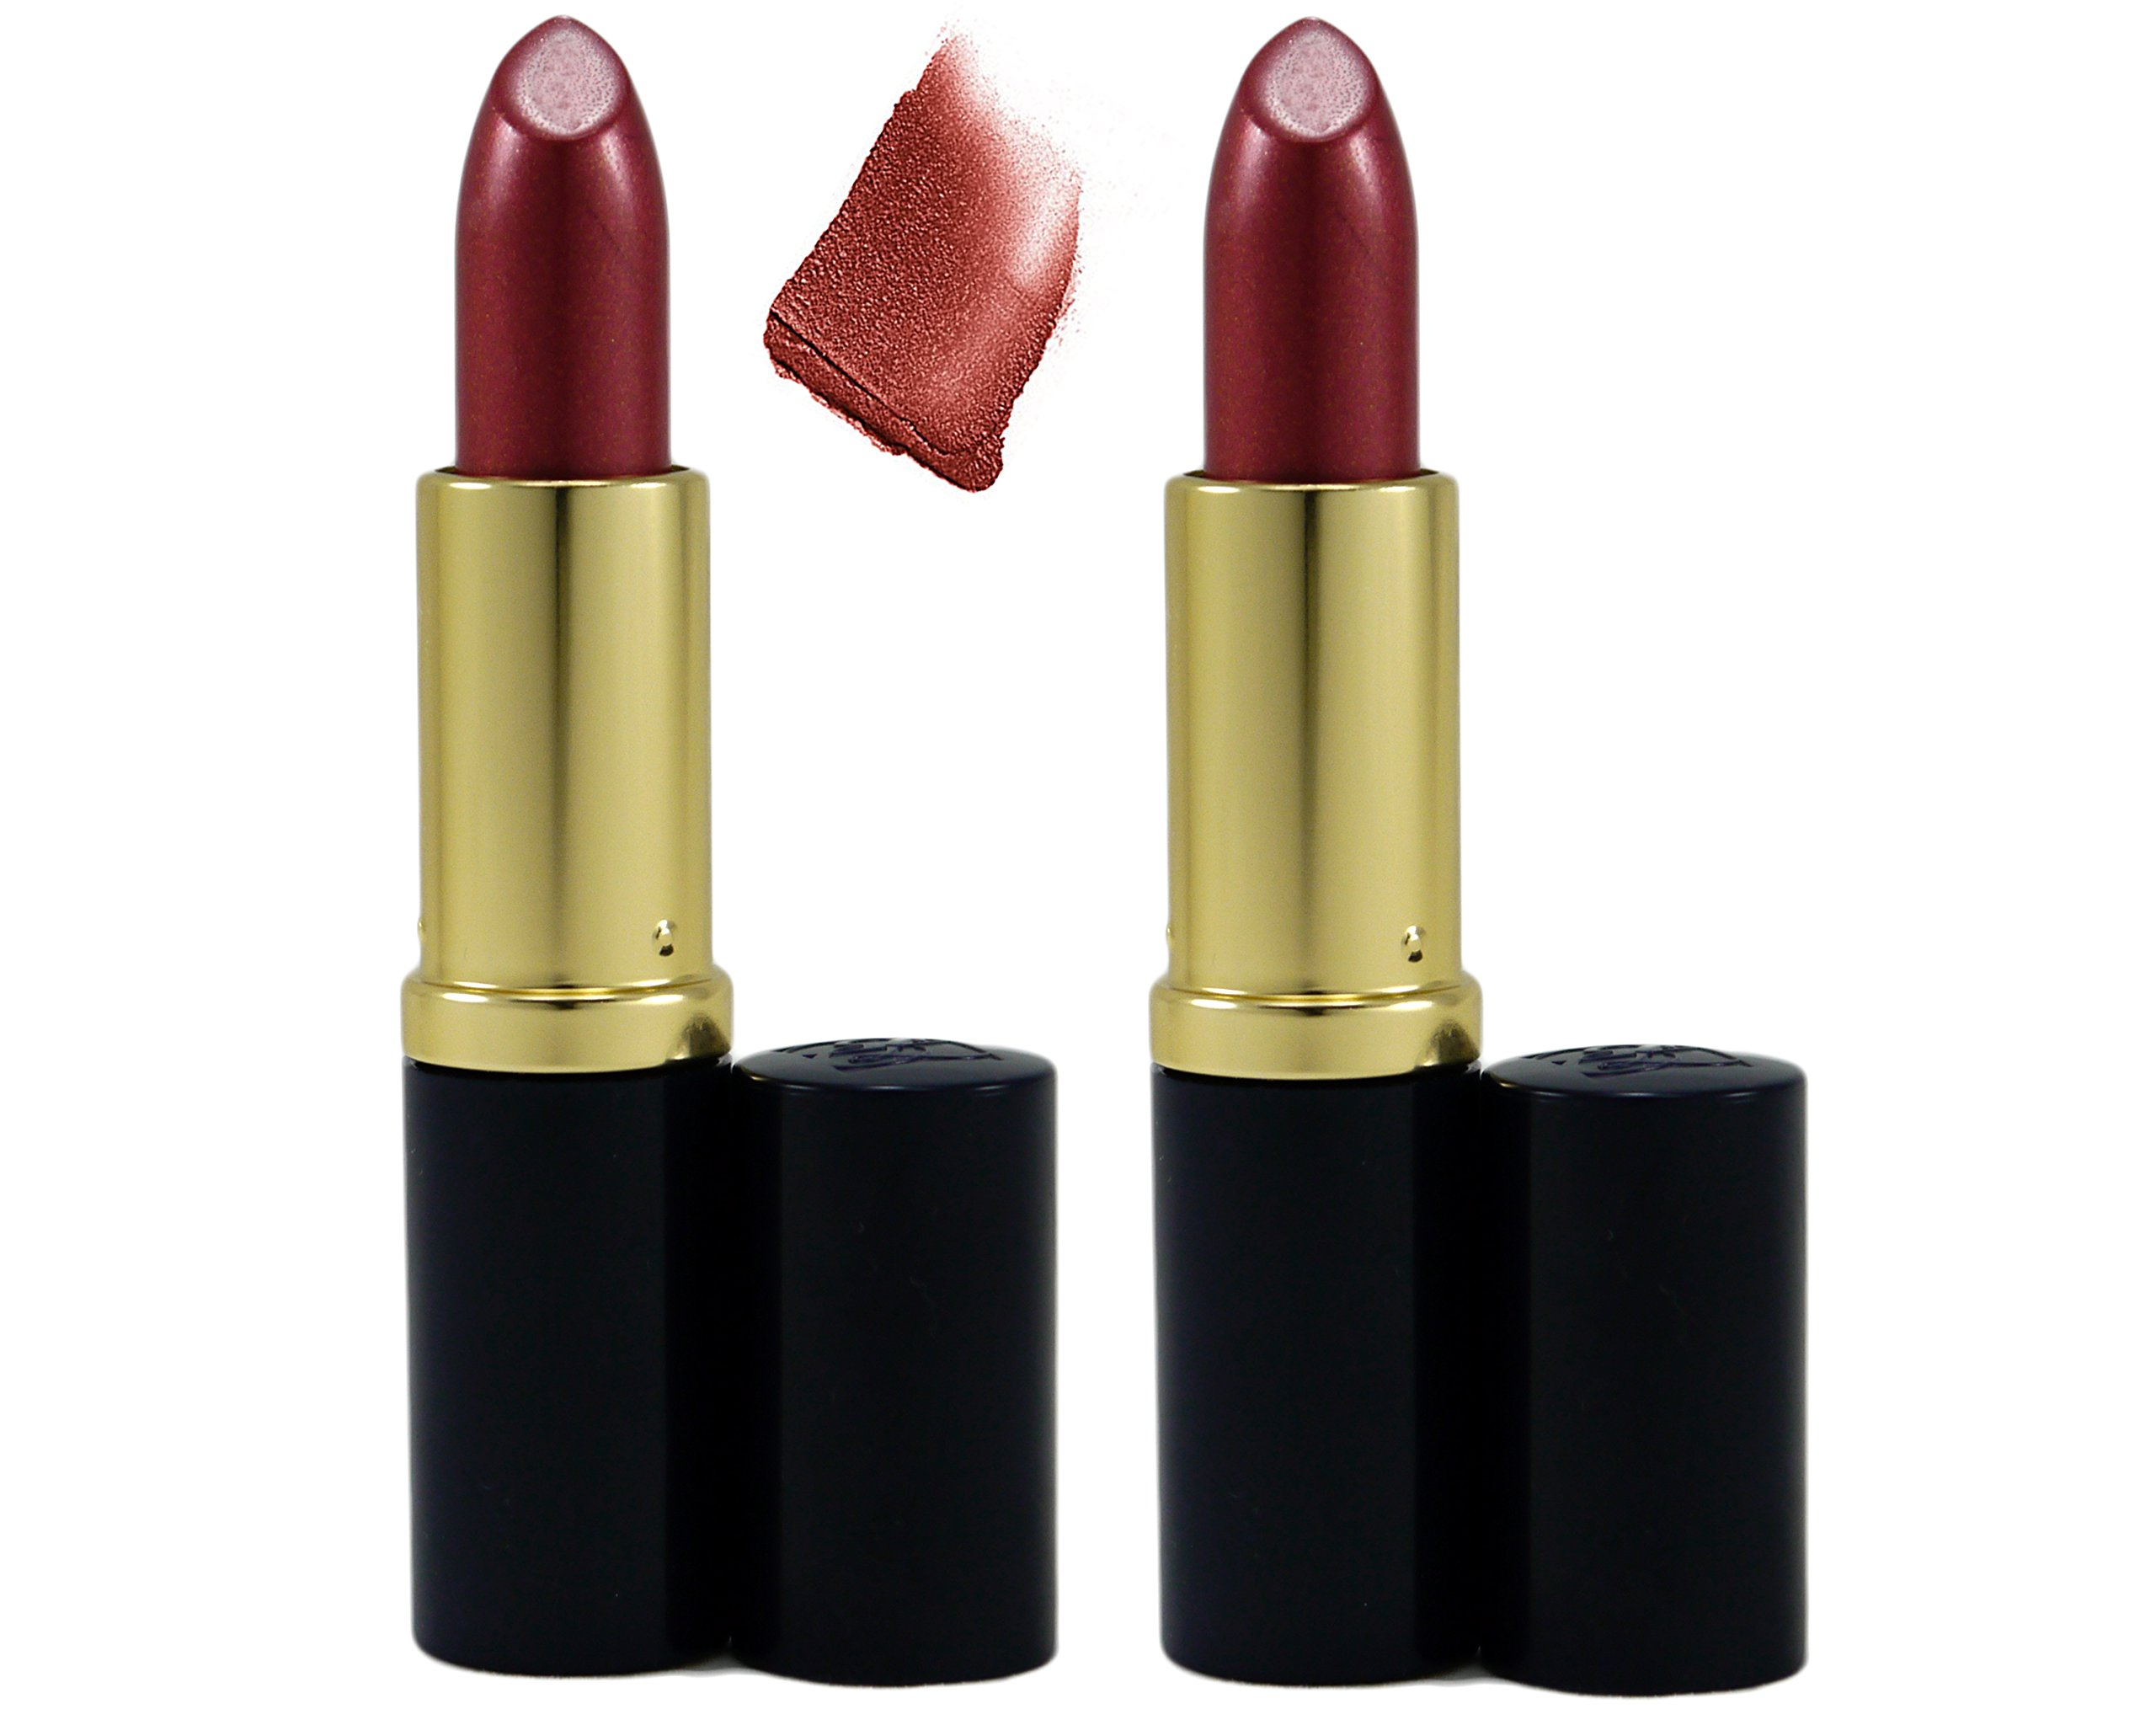 Estee Lauder Pure Color Long Lasting Lipstick - Sunstone (87-Shimmer) Duo Pack